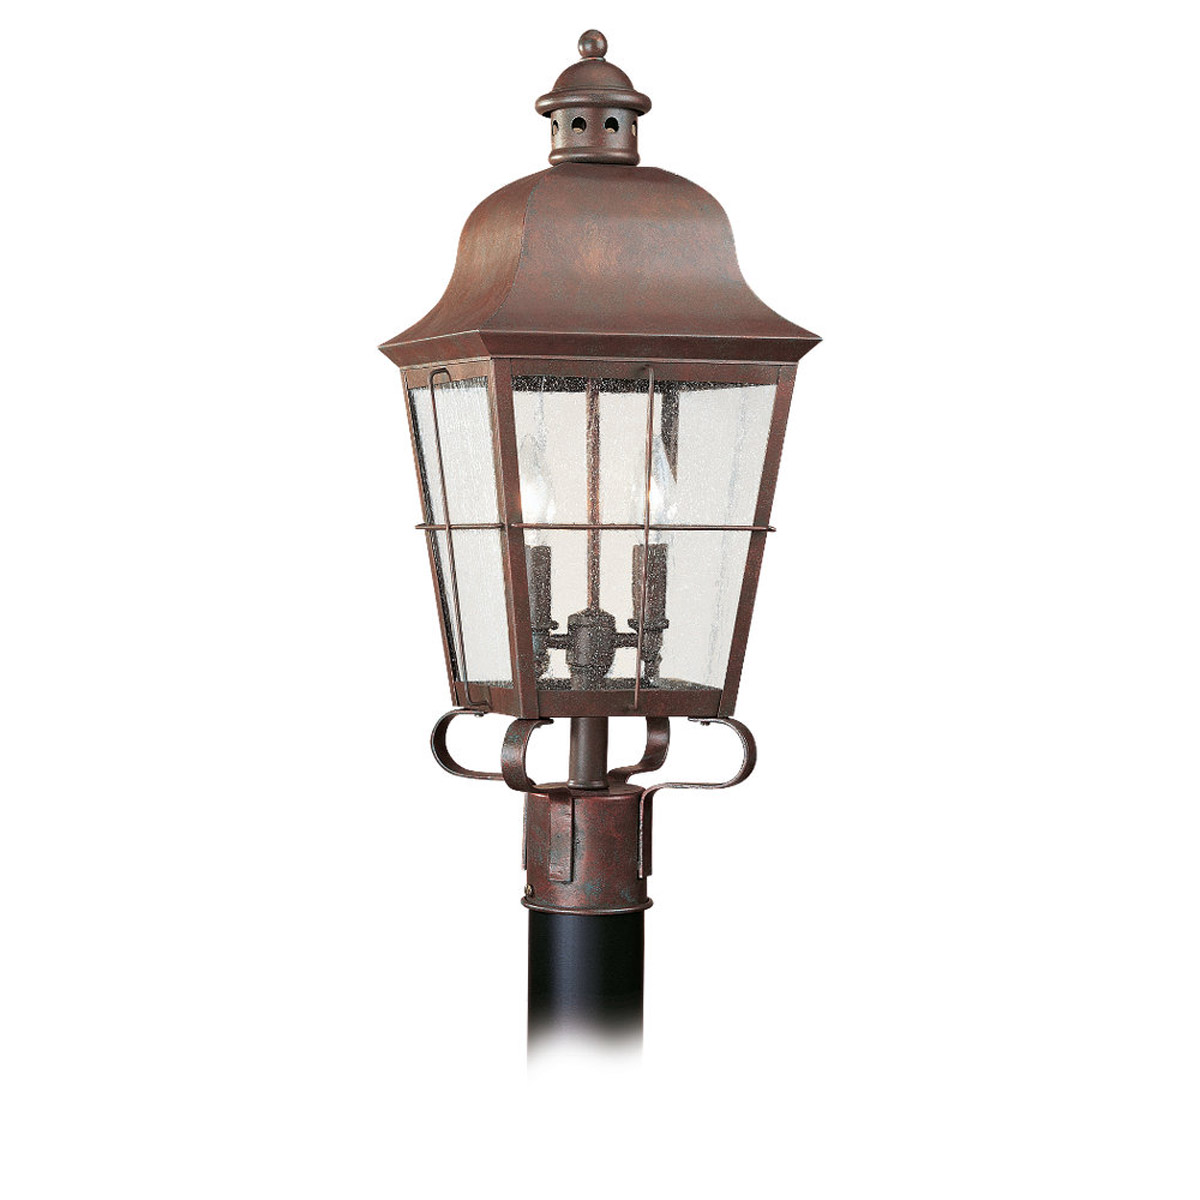 Sea Gull Lighting Chatham 2 Light Outdoor Post Lantern in Weathered Copper 8262-44